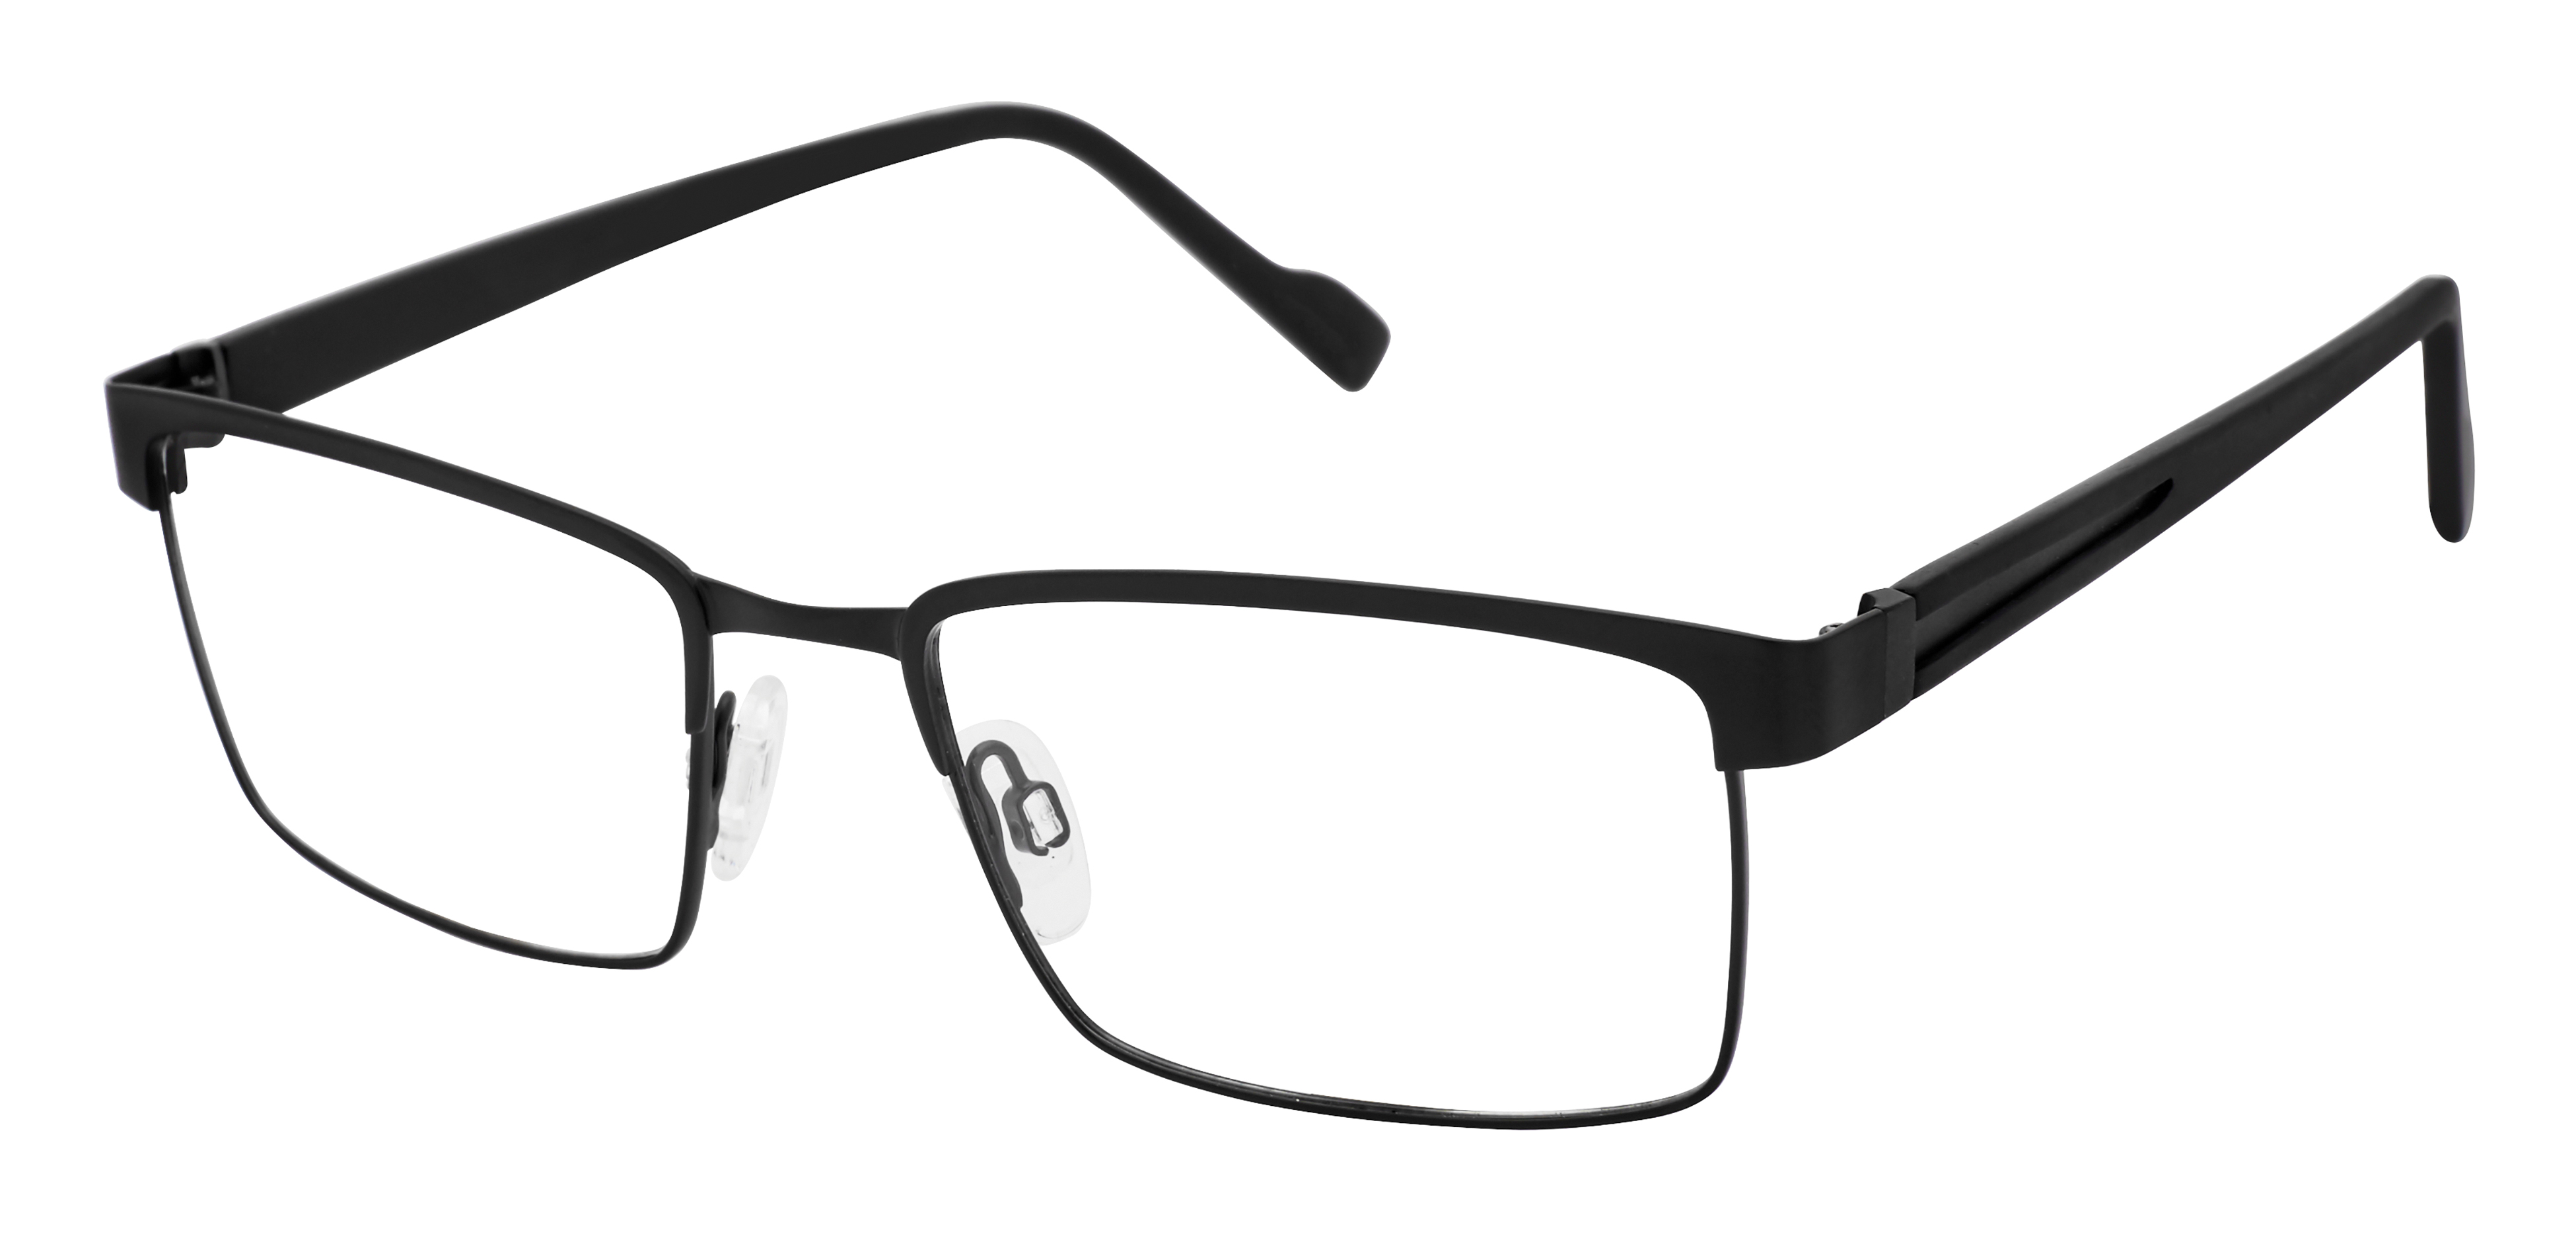 Flexible frames for busy lives in 2017   Optical Prism Magazine